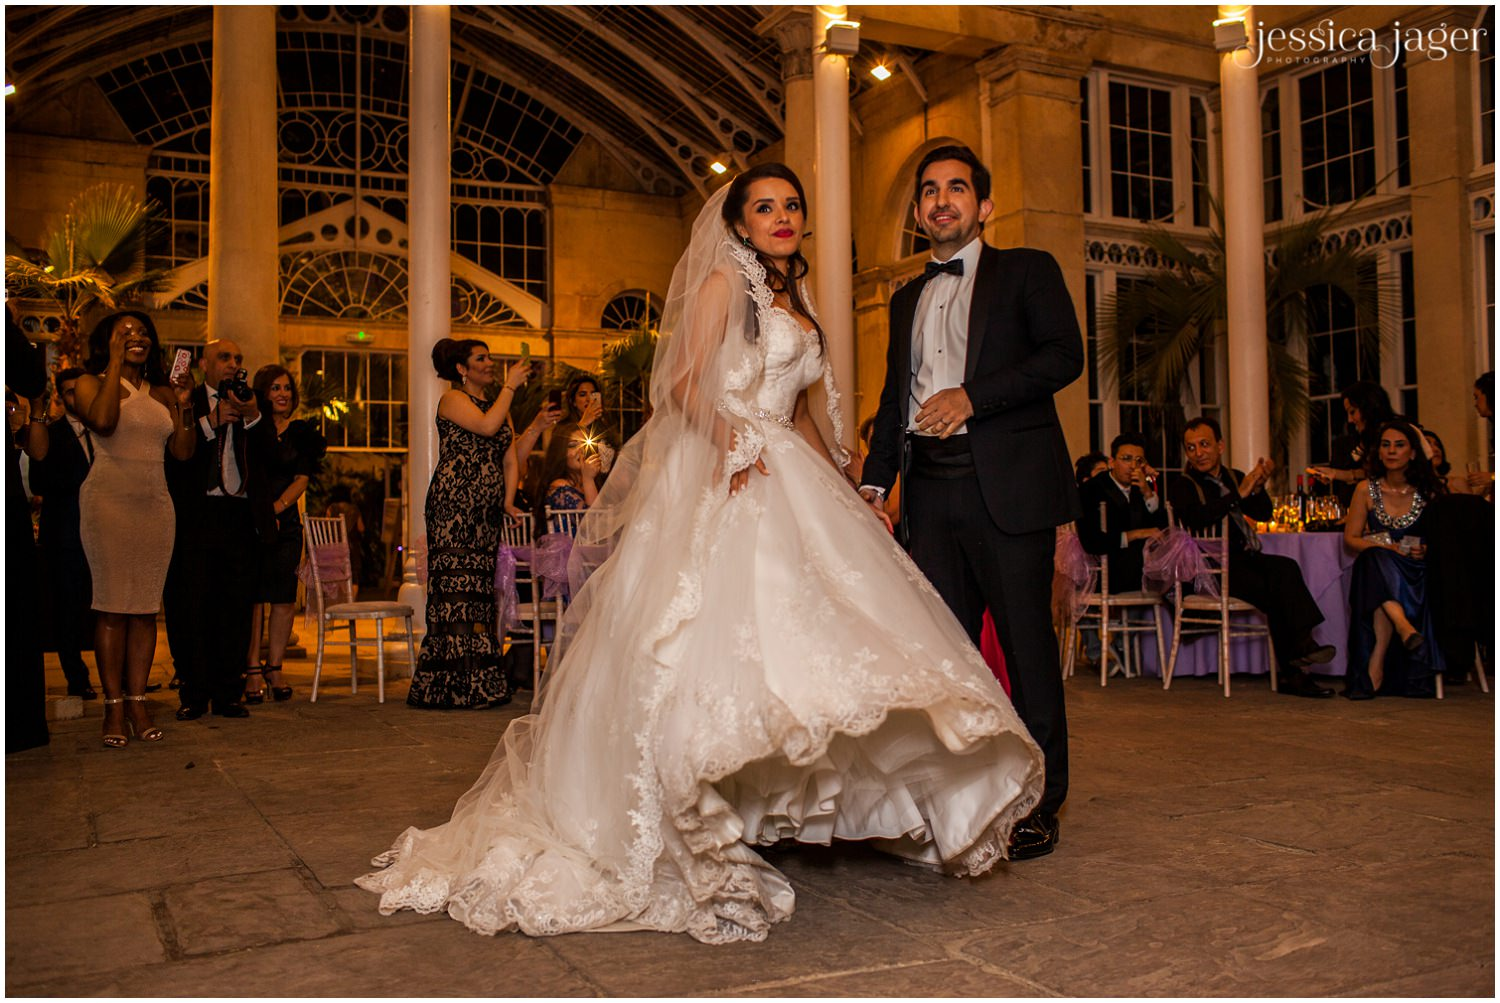 Jessica Jager Photography - A Syon Park wedding